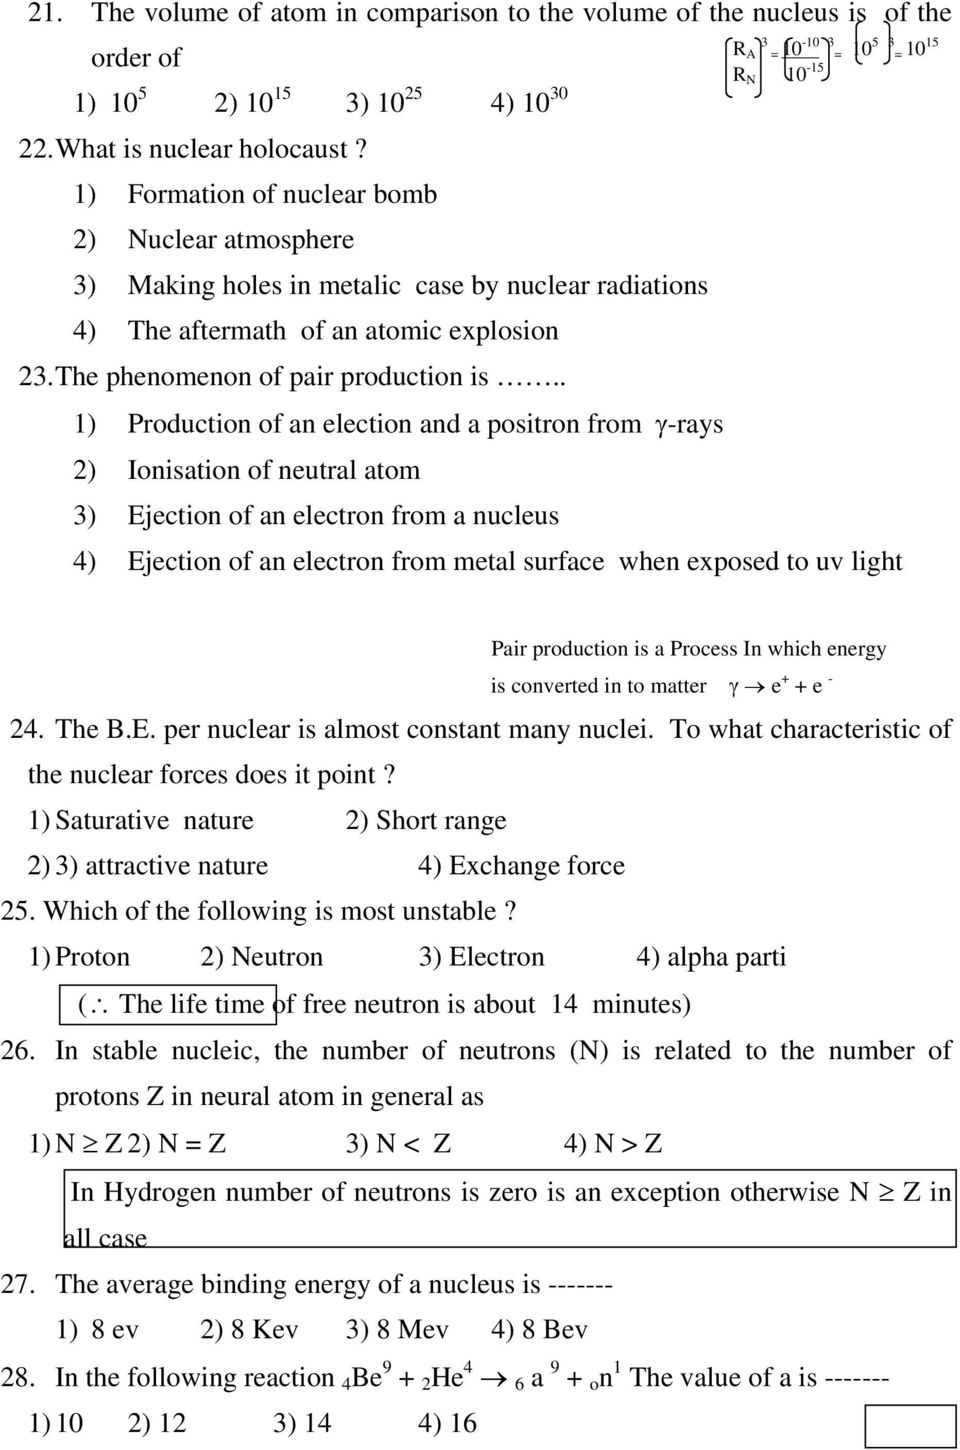 . 1) Production of an election and a positron from γ-rays 2) Ionisation of neutral atom 3) Ejection of an electron from a nucleus 4) Ejection of an electron from metal surface when exposed to uv